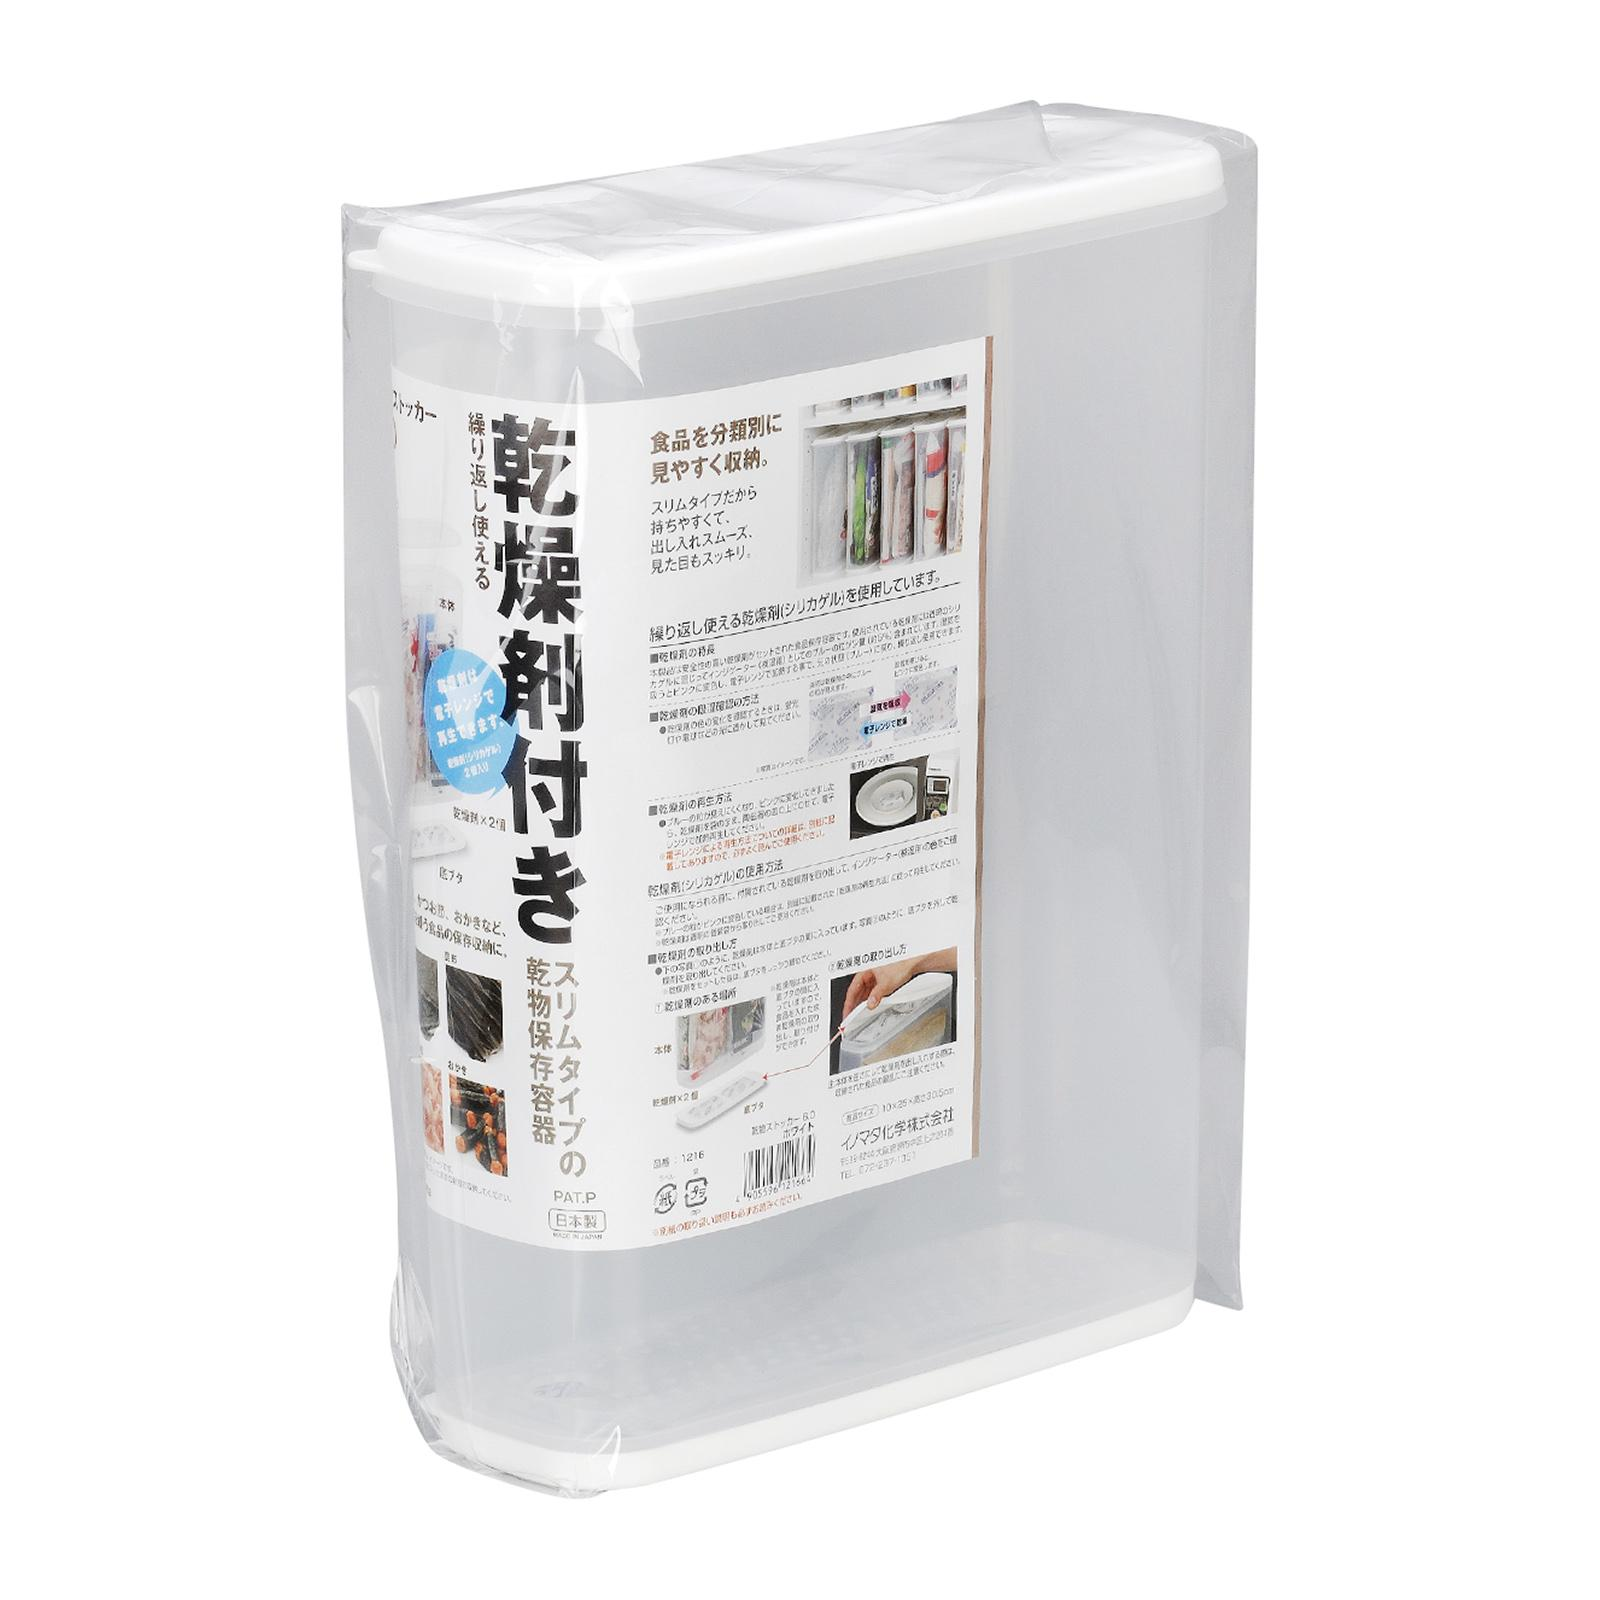 Inomata Preservation Dried Food Container with Silica Gel and Separator 6L (White)